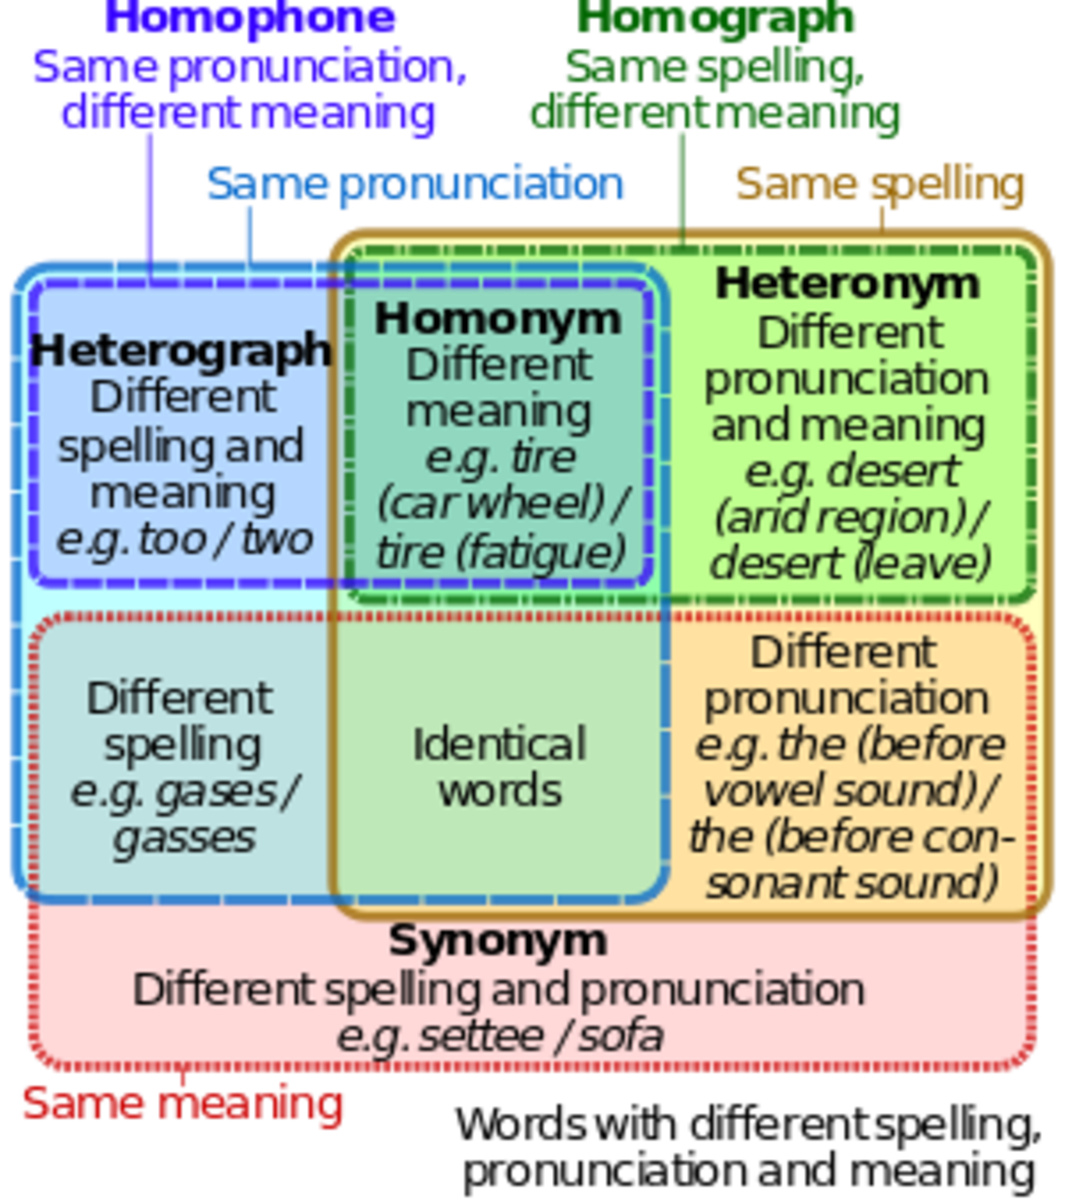 homonyms-homophones-and-homographs-for-esl-students